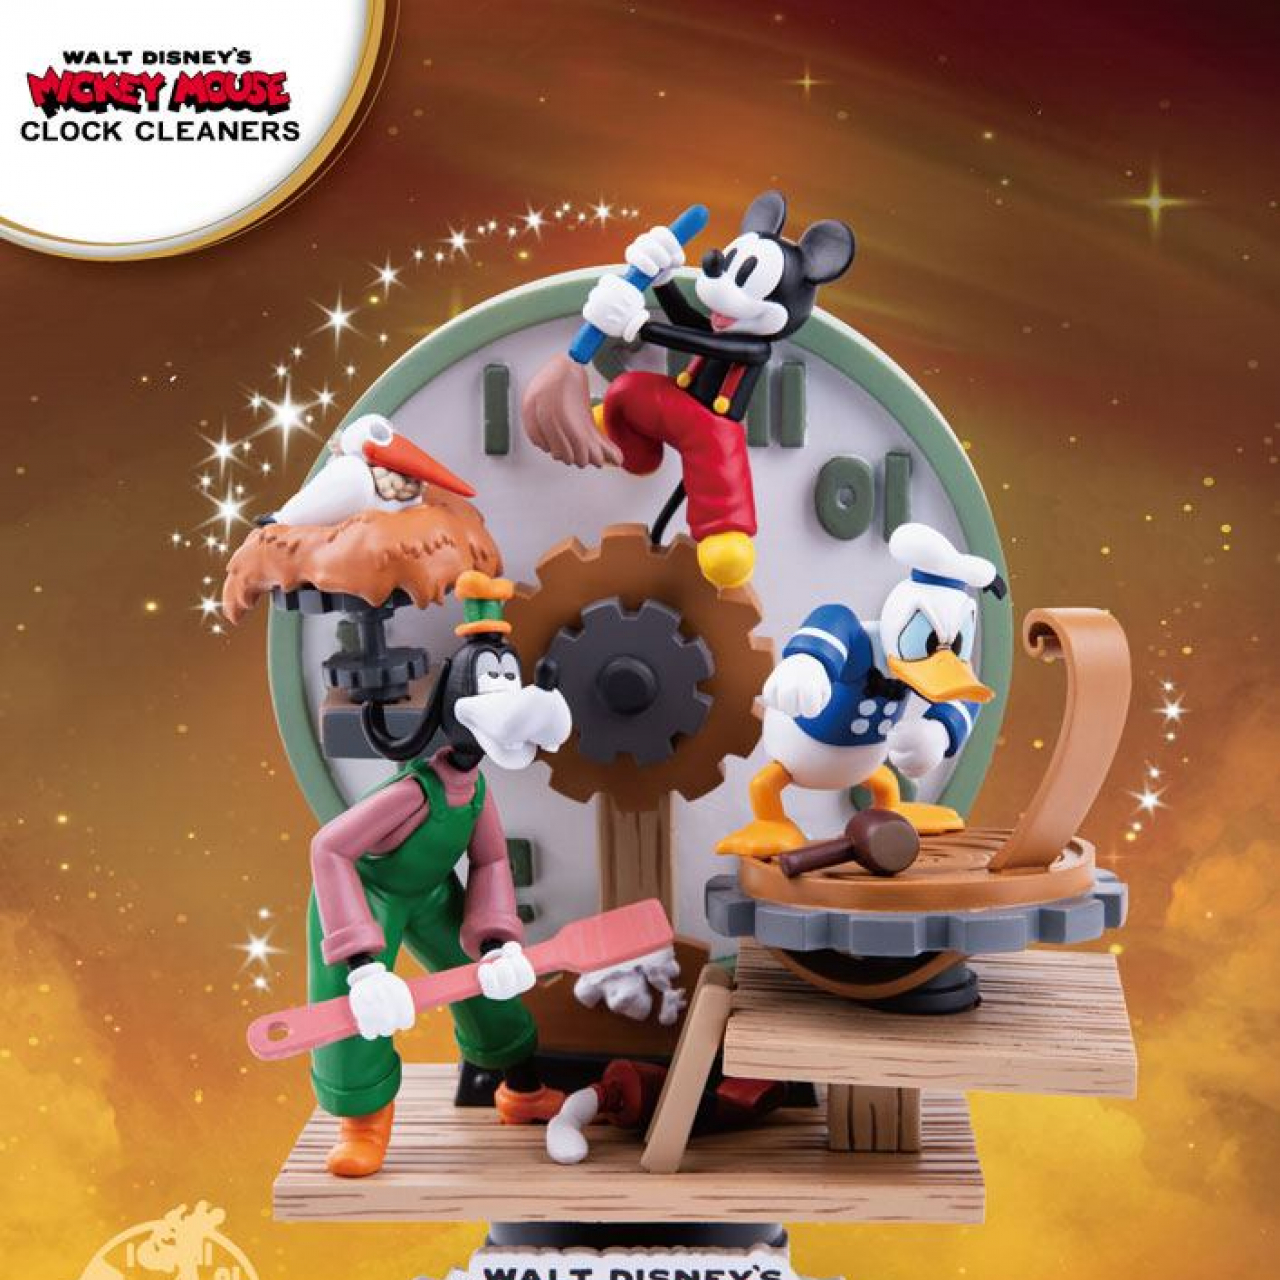 Disney Mickey Mouse D-Stage PVC Diorama Clock Cleaners 15 cm